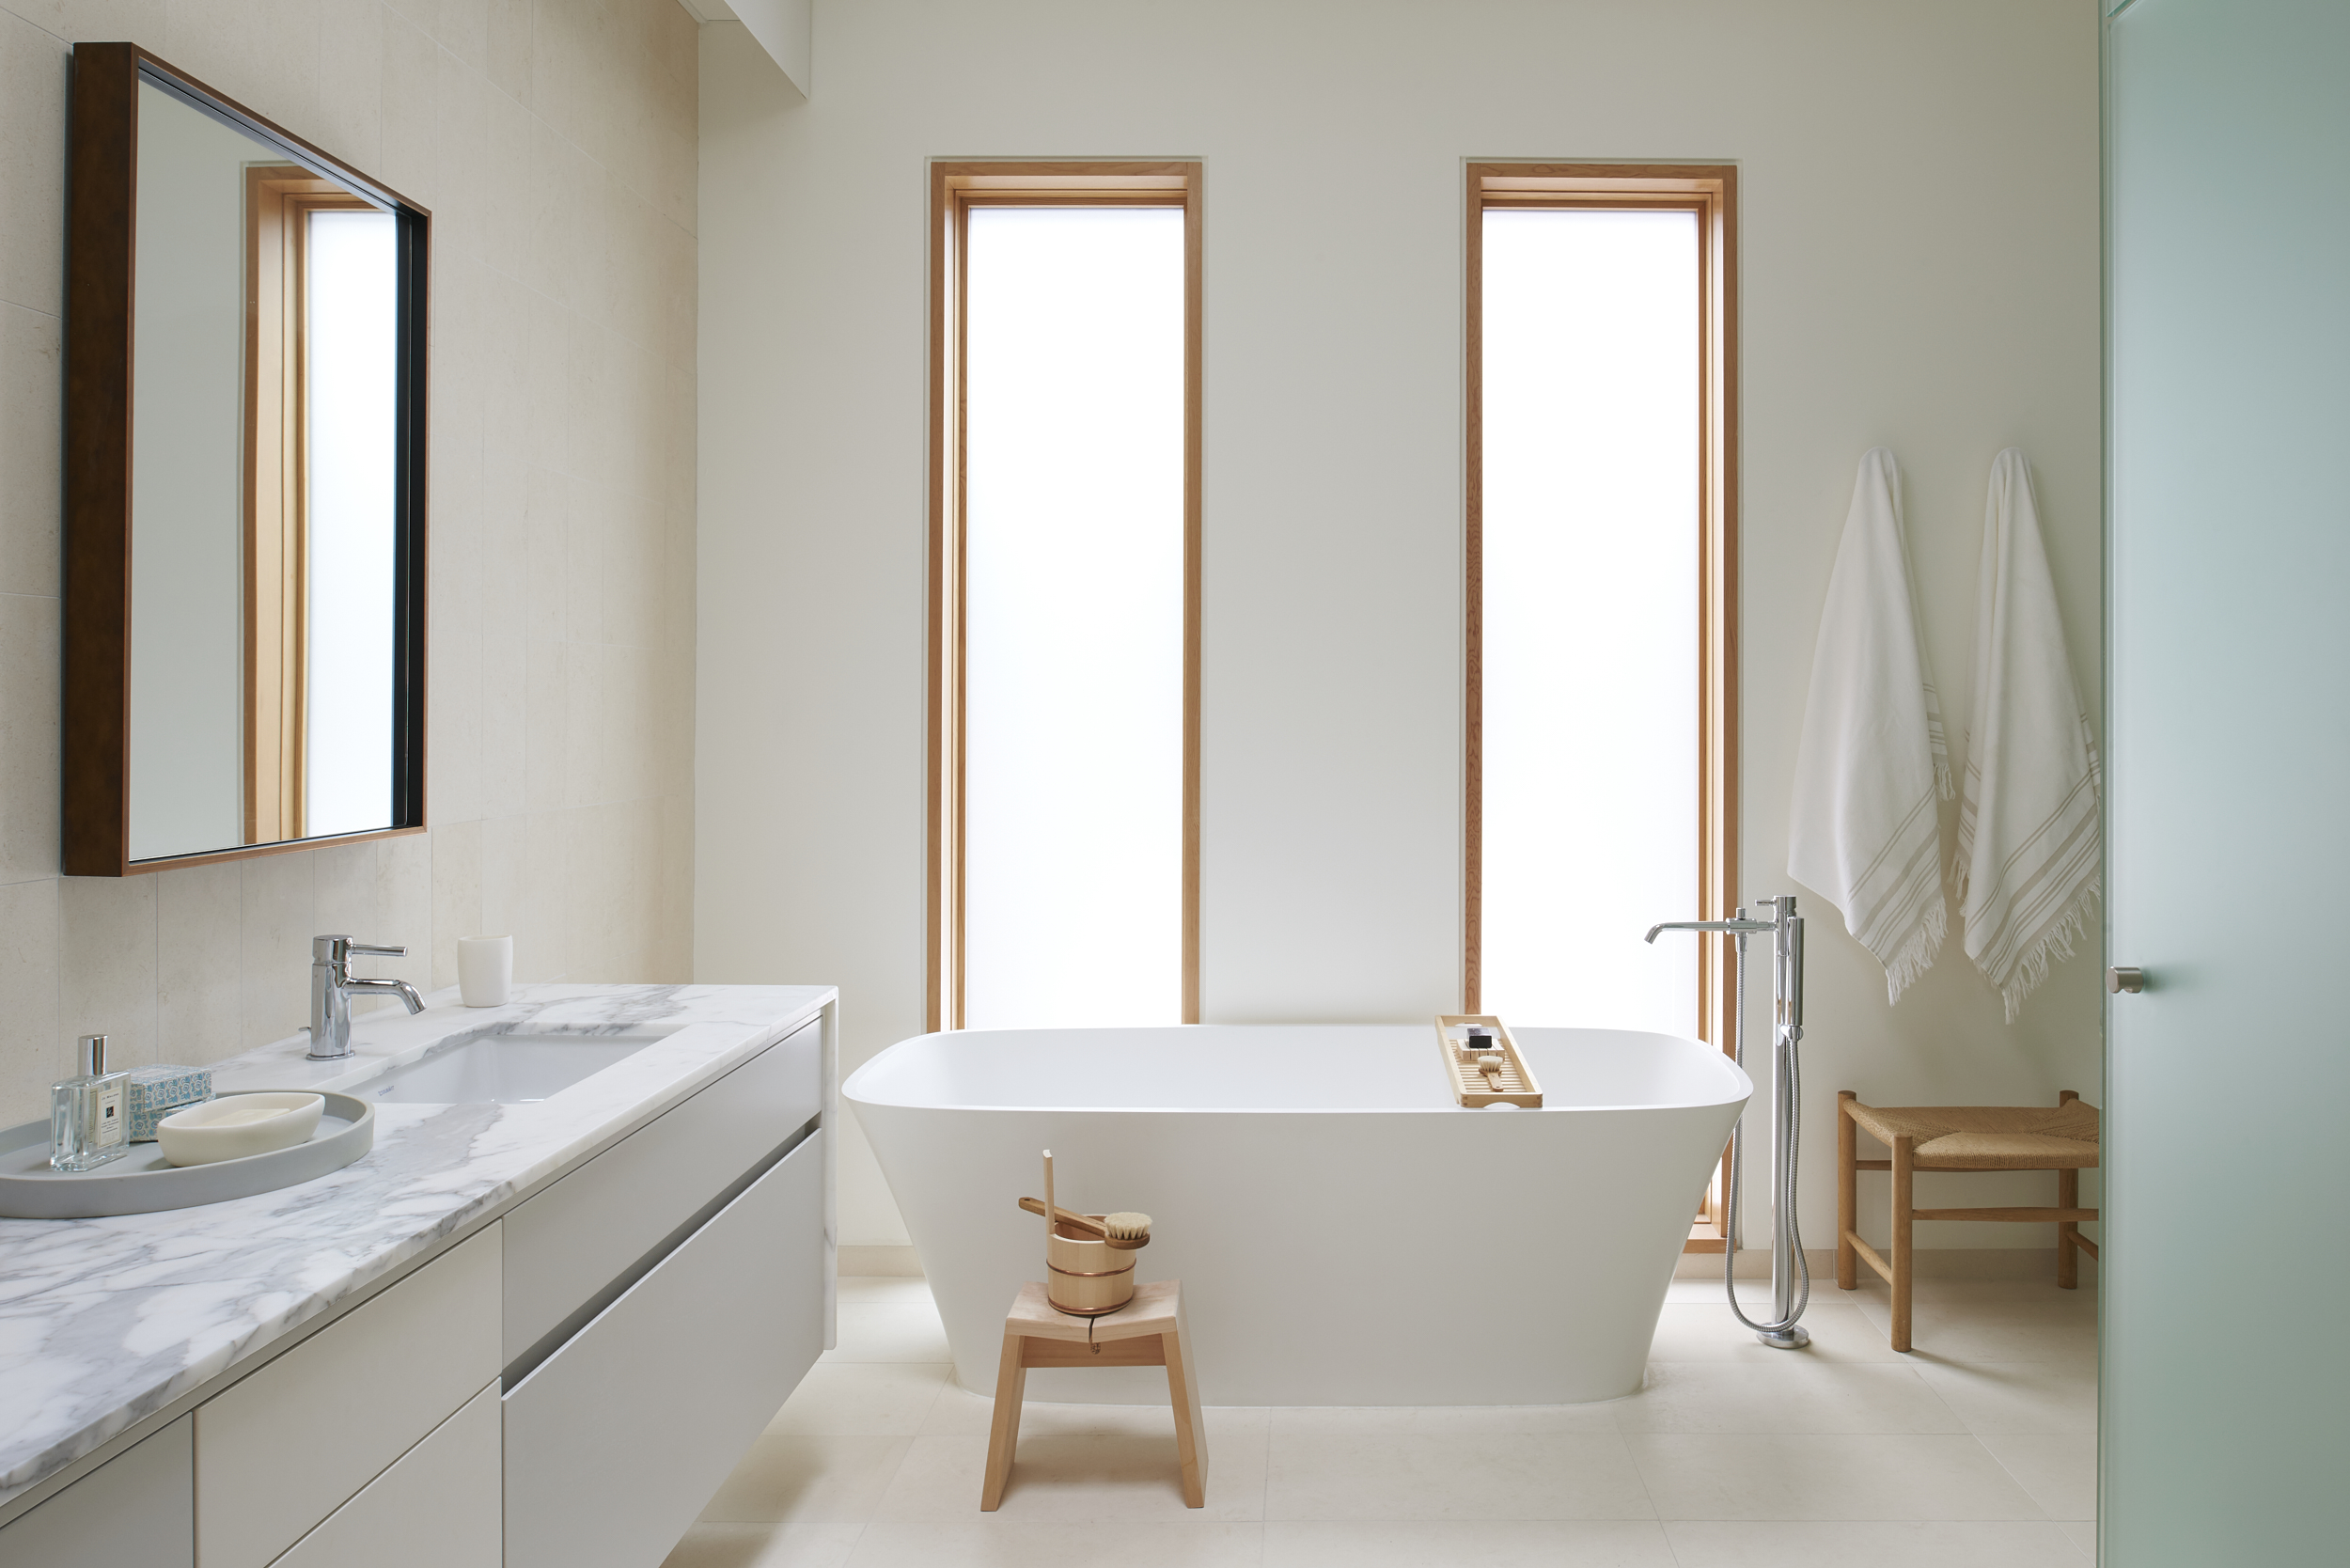 Modern Toronto beautiful architect designed master bathroom. White tile, white bathtub, wooden windows. Interior design.